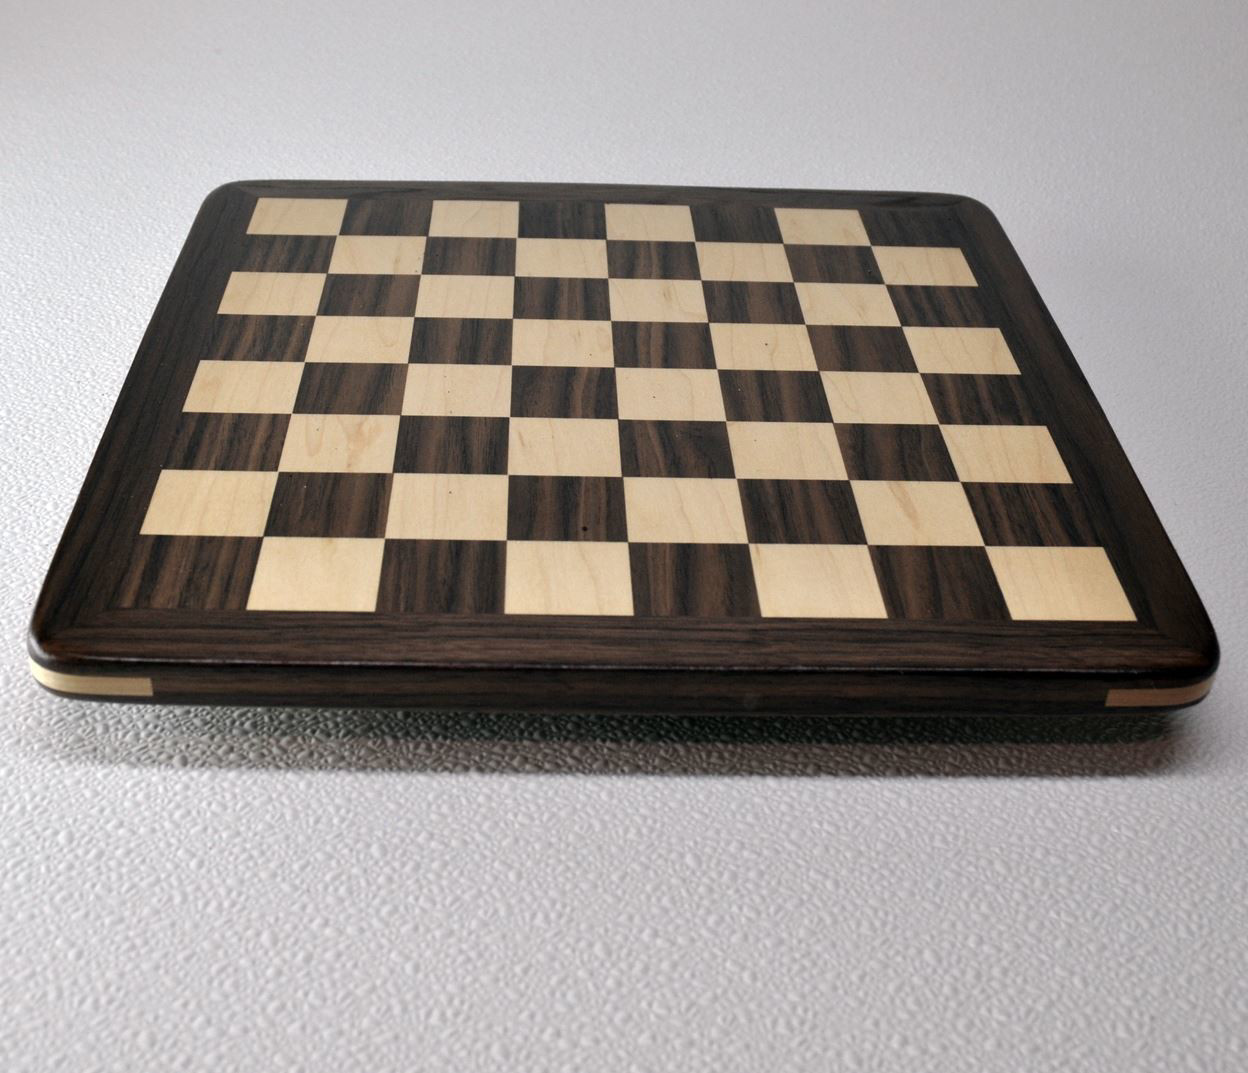 Picture of Black Walnut and Maple Chess Board 1¾ inch squares